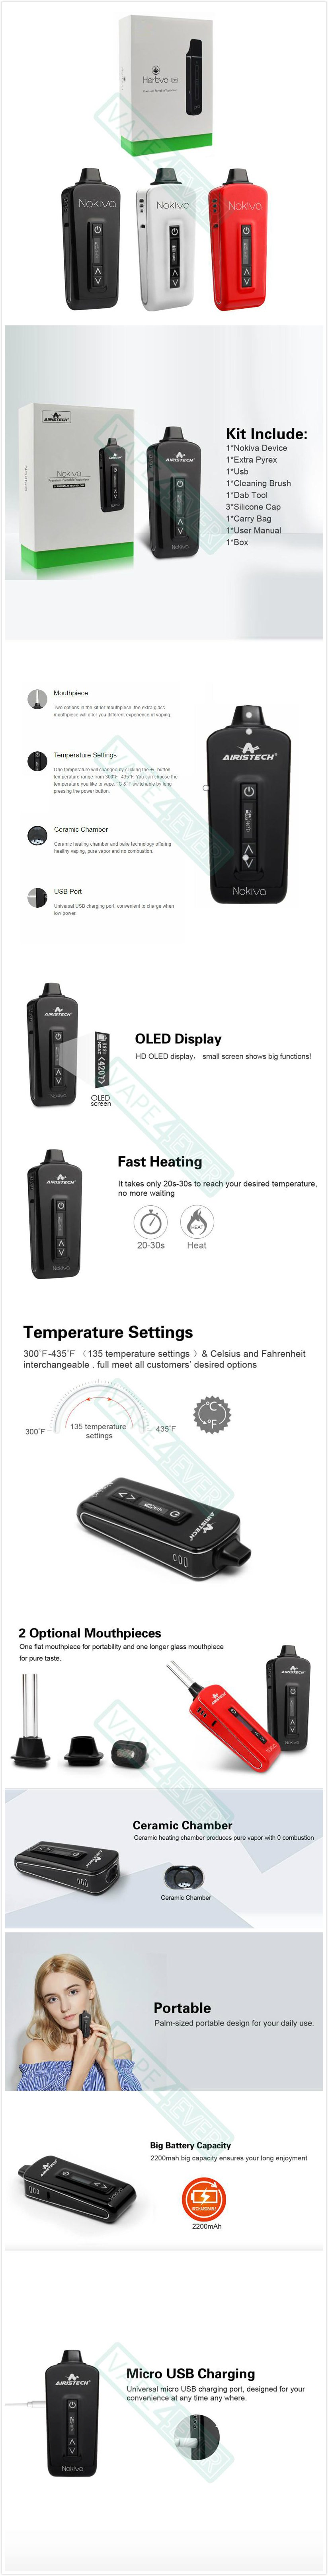 Airistech Herbva Nokiva 2200mAh Portable Dry Herb Vaporizer With OLED Display Instruction